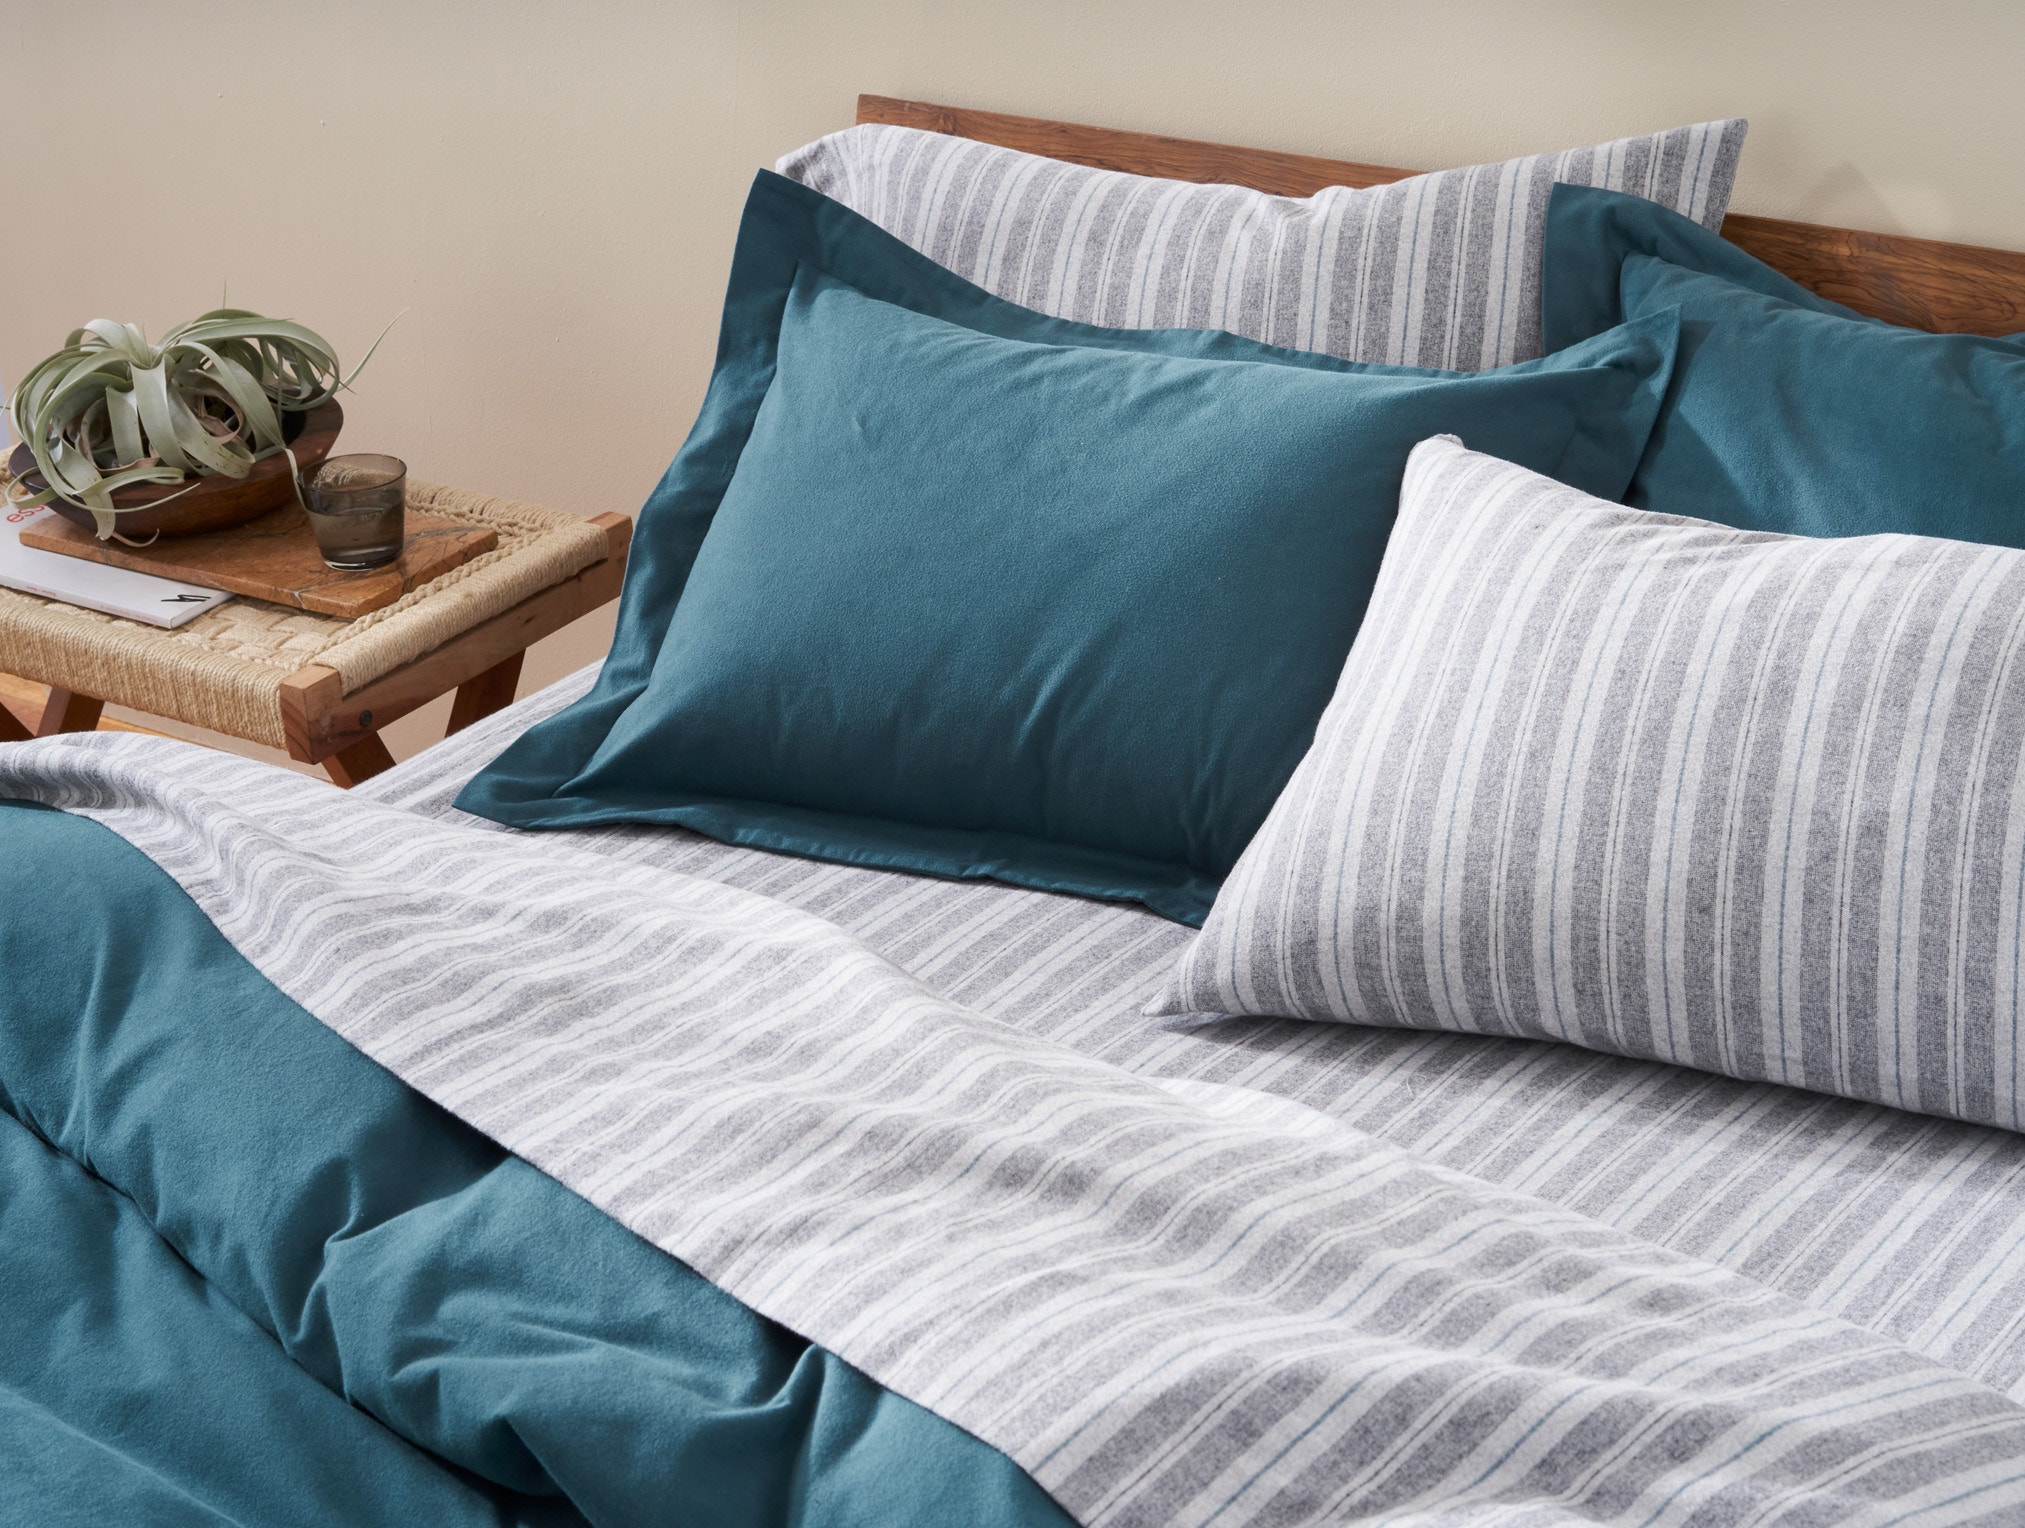 Striped Cloud Brushed Organic Flannel Sheets with Cloud Brushed Organic Flannel Duvet Cover and Shams in Aegean